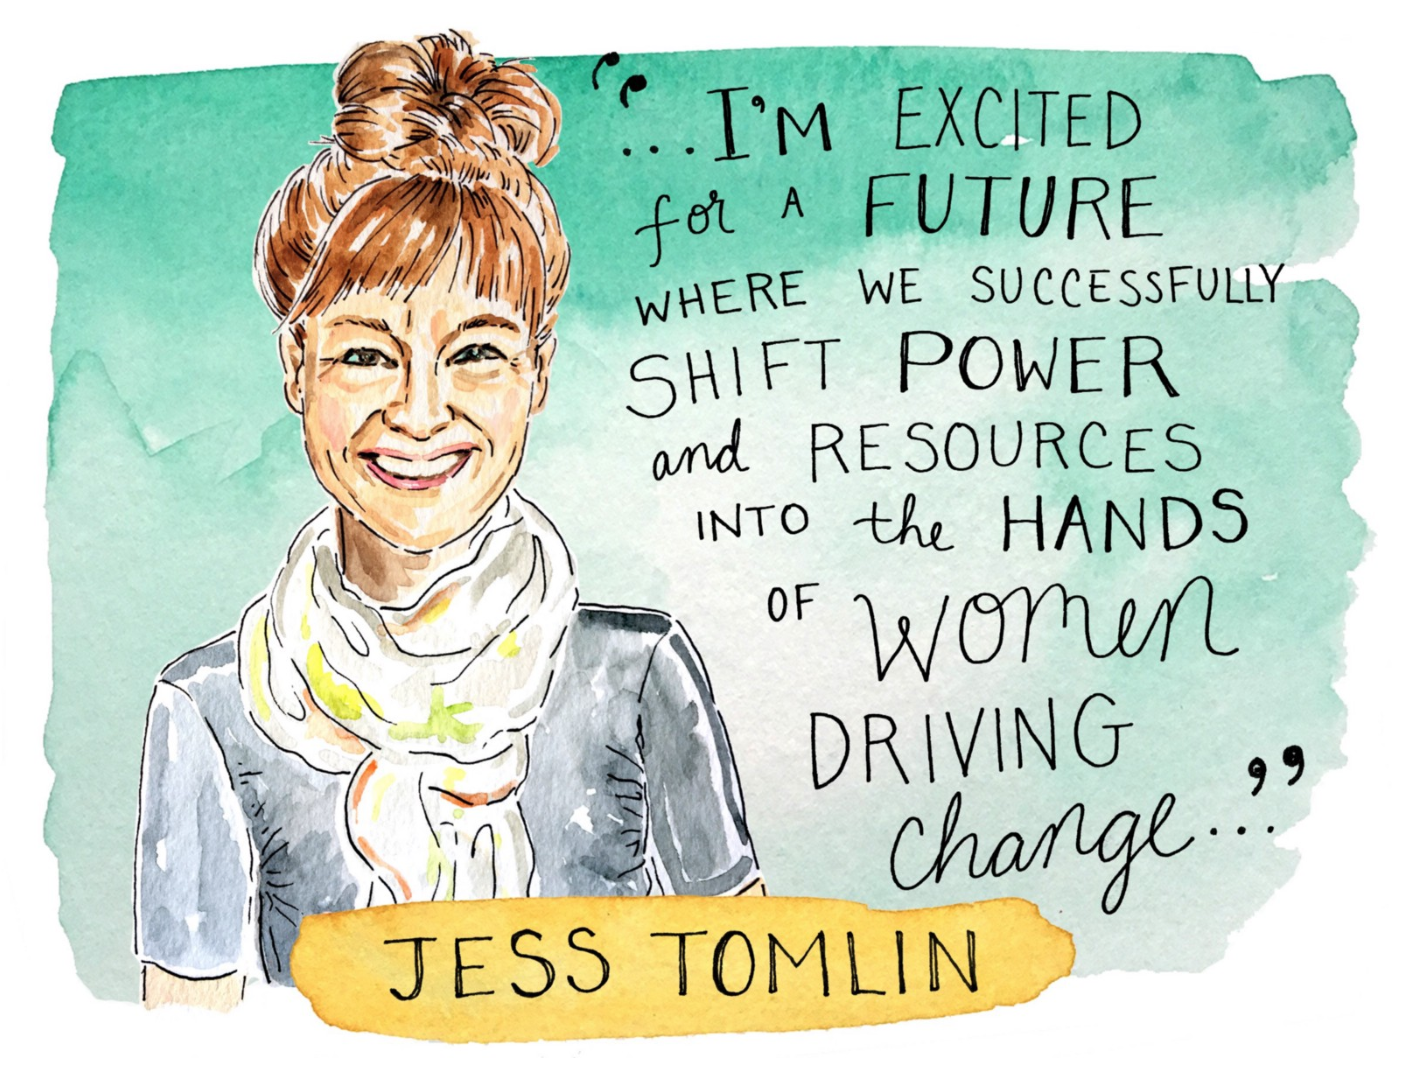 """Jess Tomlin   Jess Tomlin is the CEO of The  MATCH International Women's Fund , which supports grassroots innovators and organizers who are working to advance gender equality. As part of Jess's mission to """"shift power and resources into the hands of women driving change,"""" she is connecting local women's movements with the financial backing they need to put homegrown solutions into action."""